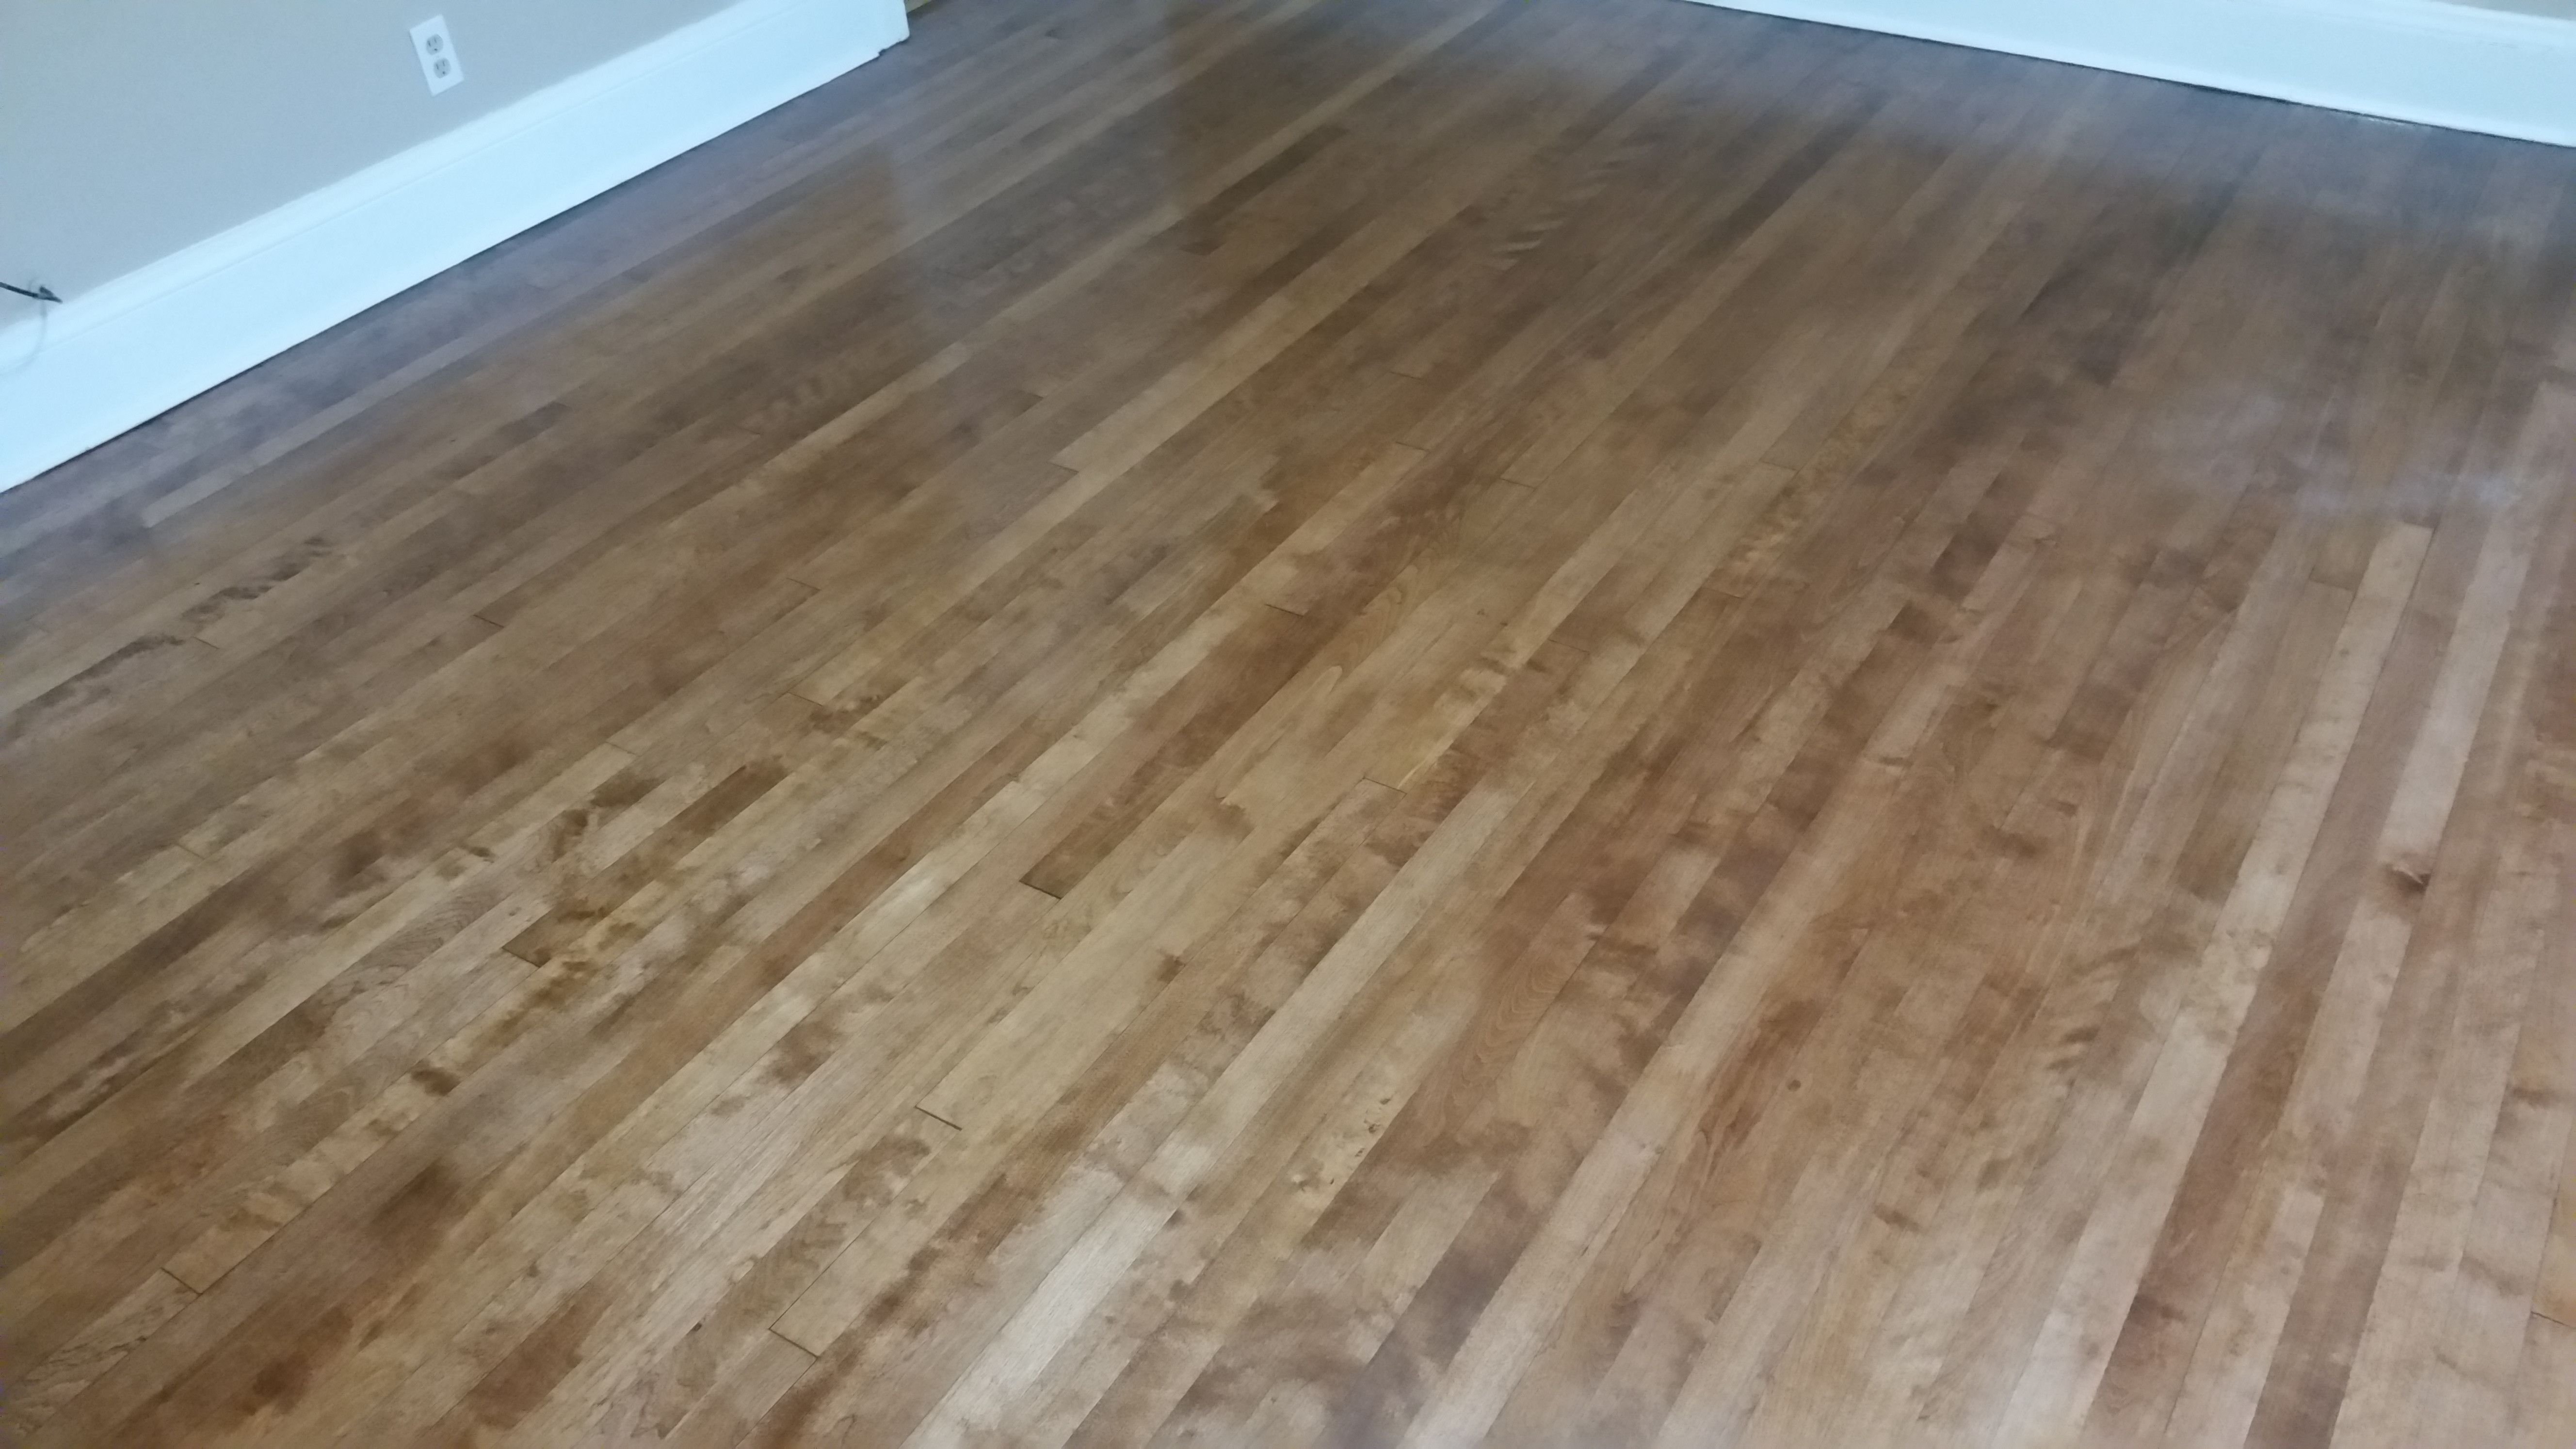 hardwood floor refinishing new york of rochester hardwood floors of utica home throughout 20151028 104648 20160520 161308resize